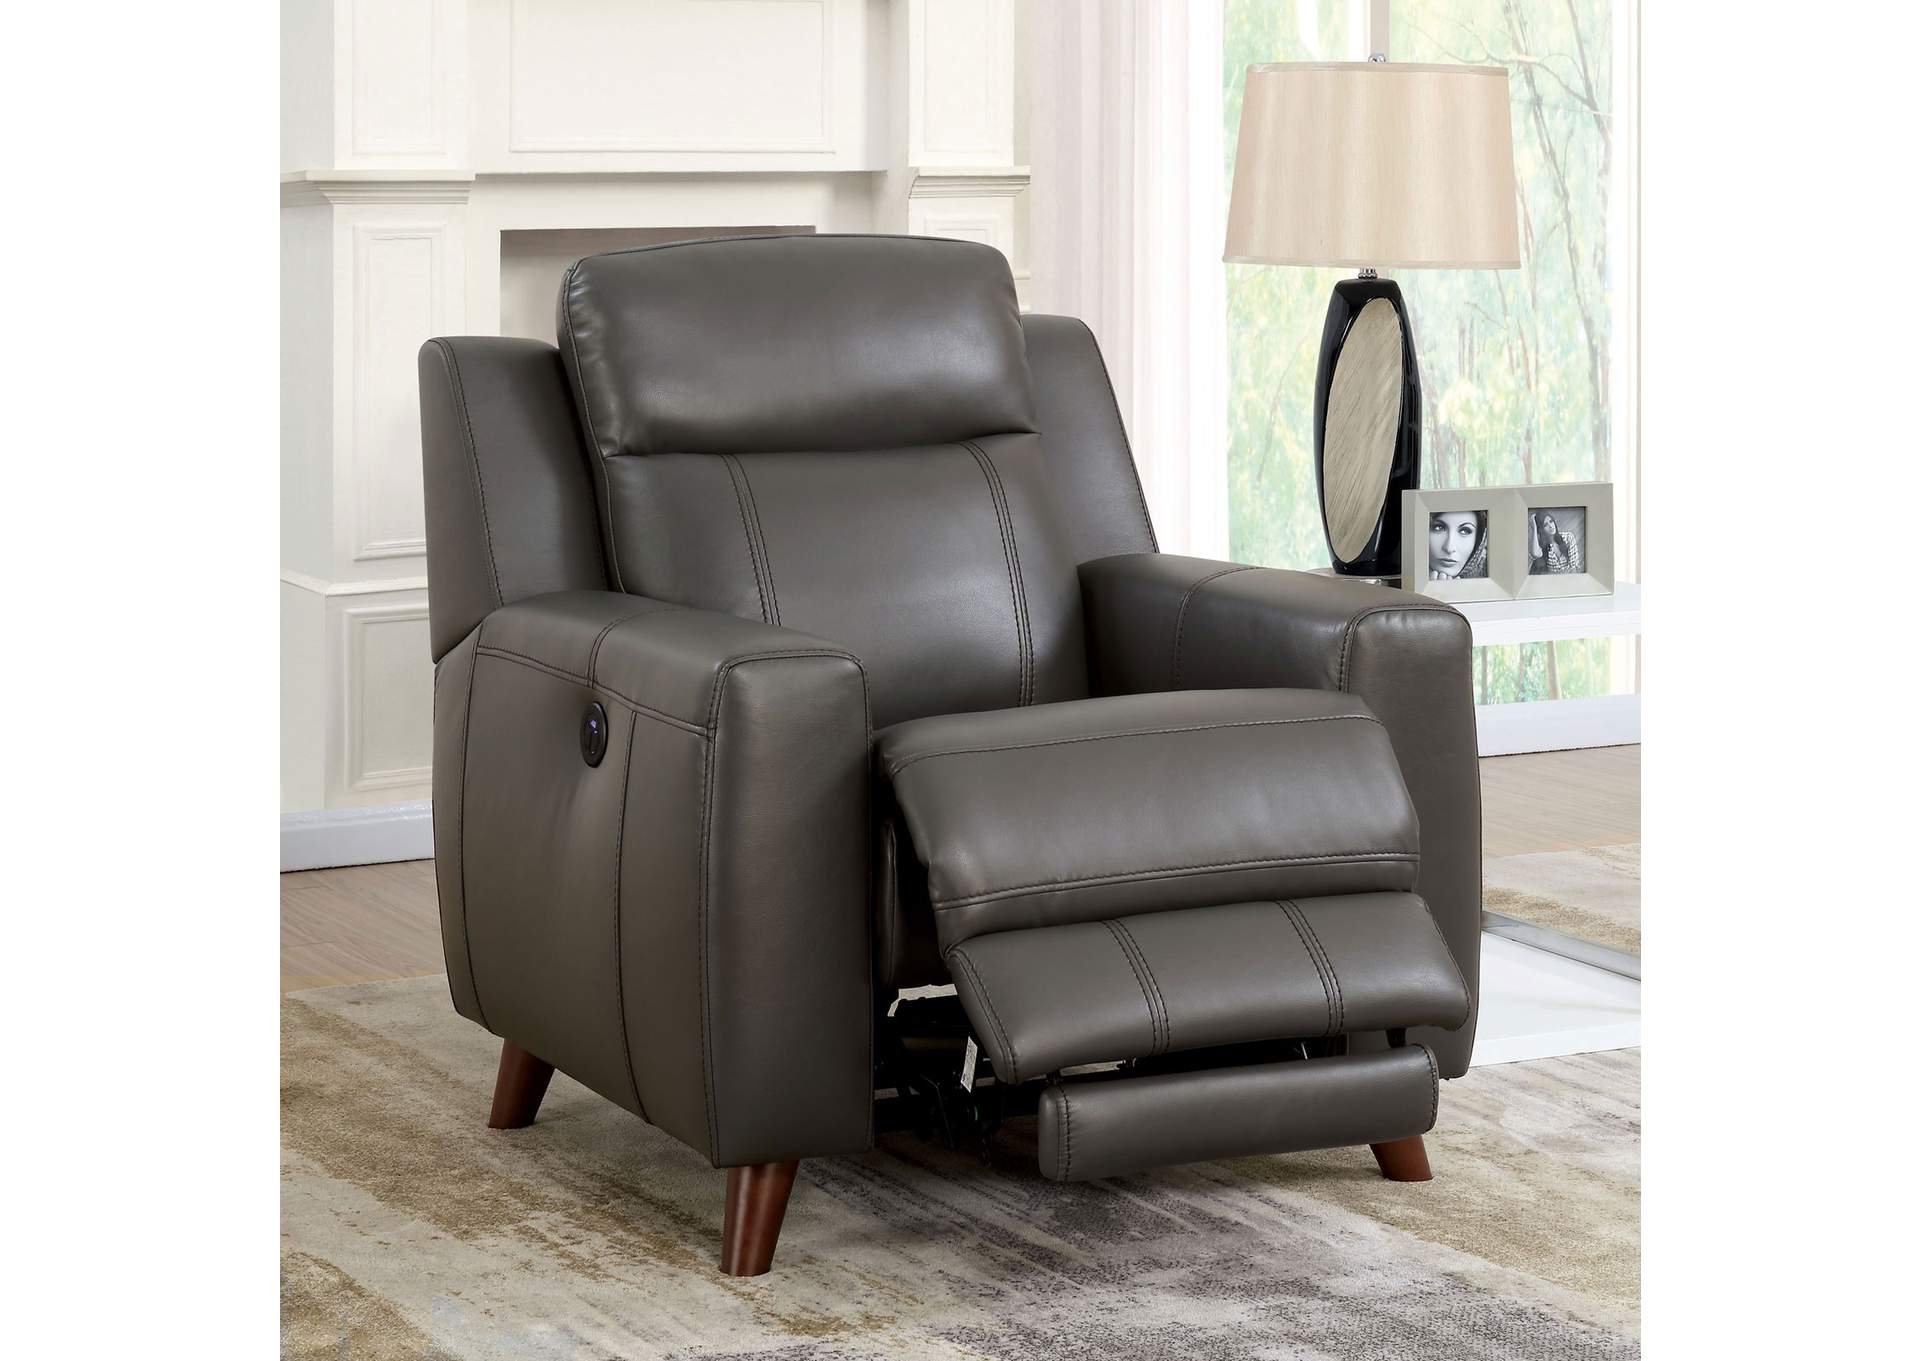 Ashley Furniture Recliner Chairs Modern Furniture And Mattress Outlet Bellmawr Cherry Hill